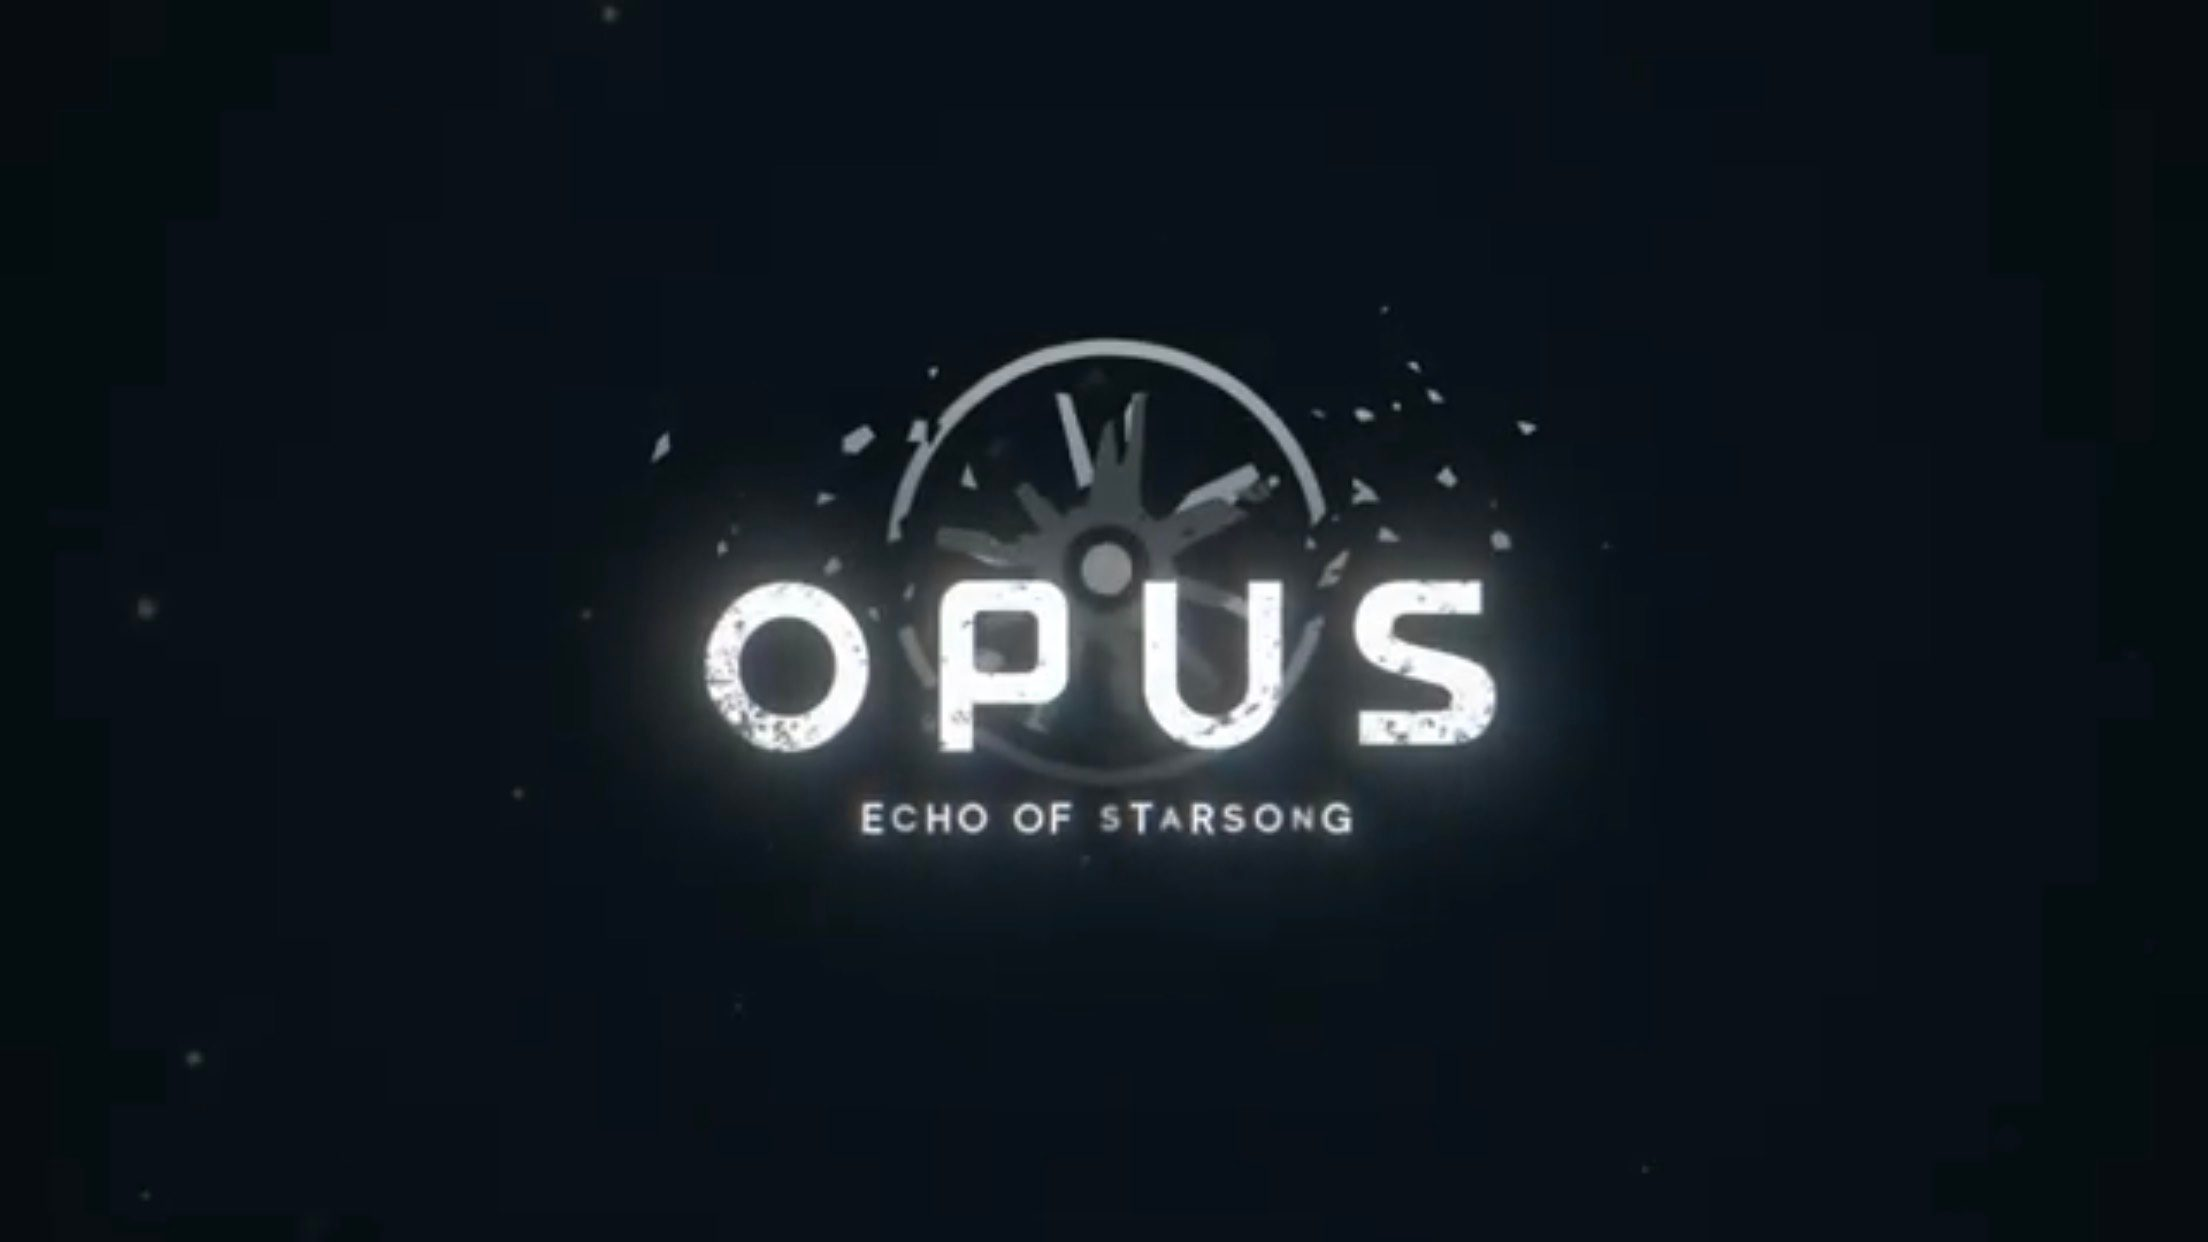 Sigono Is In Development For A New OPUS Game